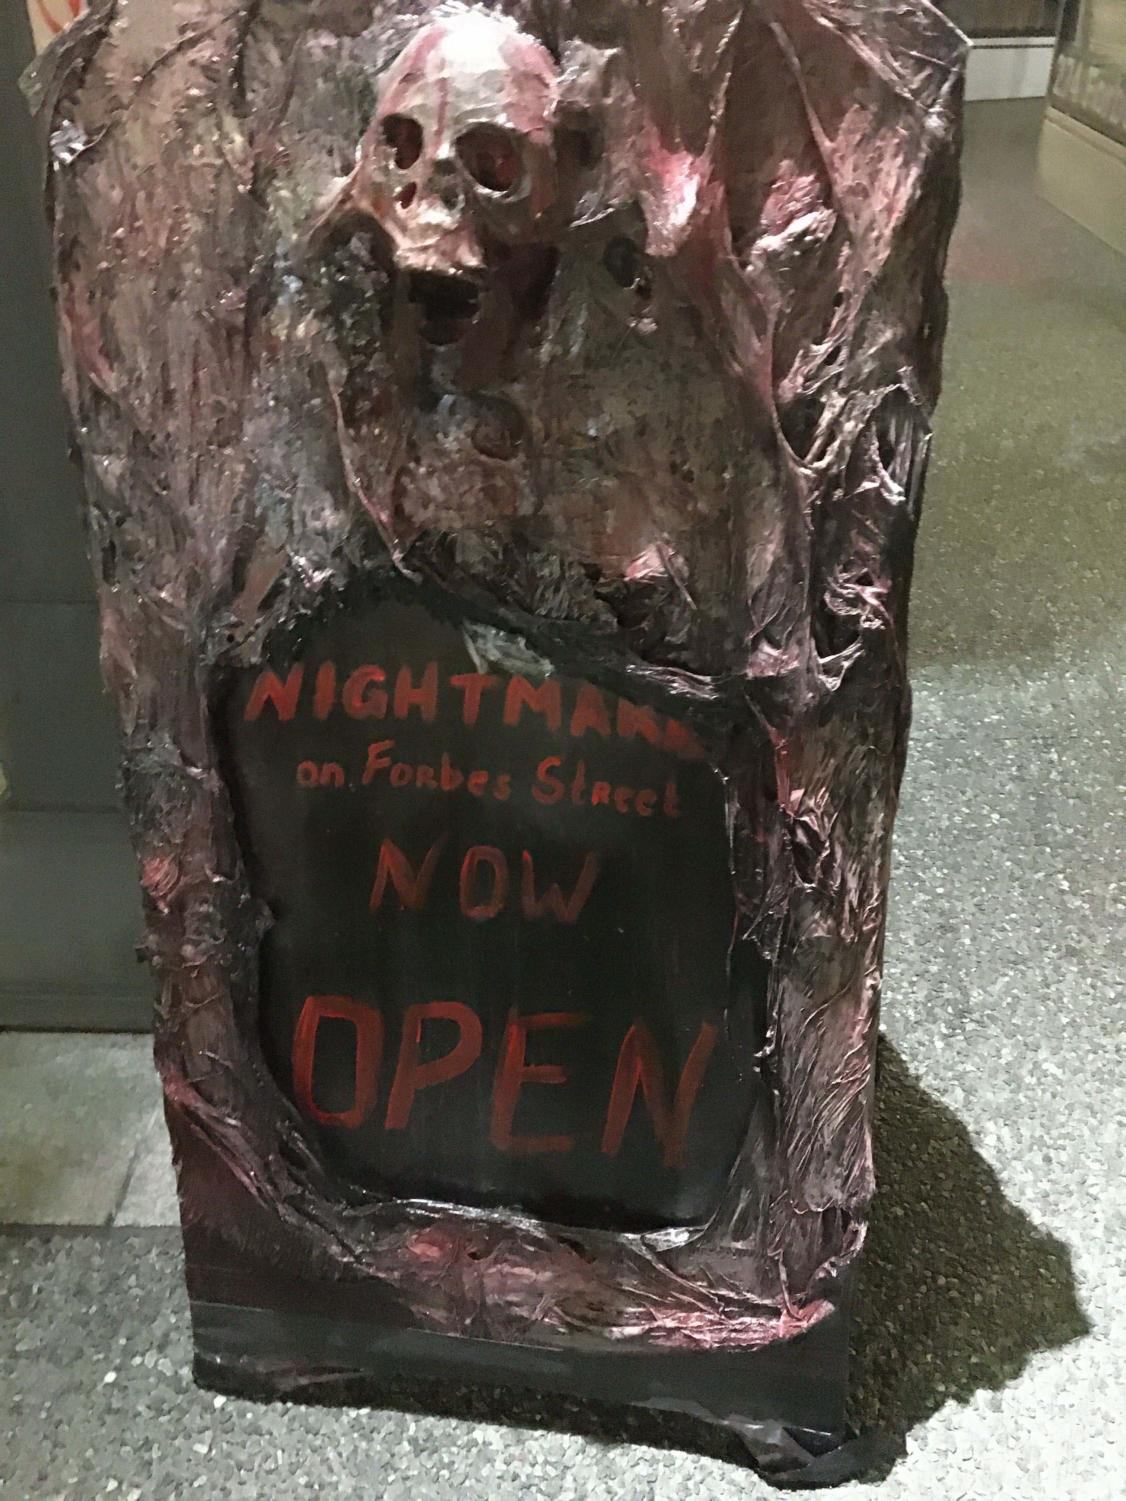 Nightmare on Forbes Street follows six other themed pop-up bars in the same space.